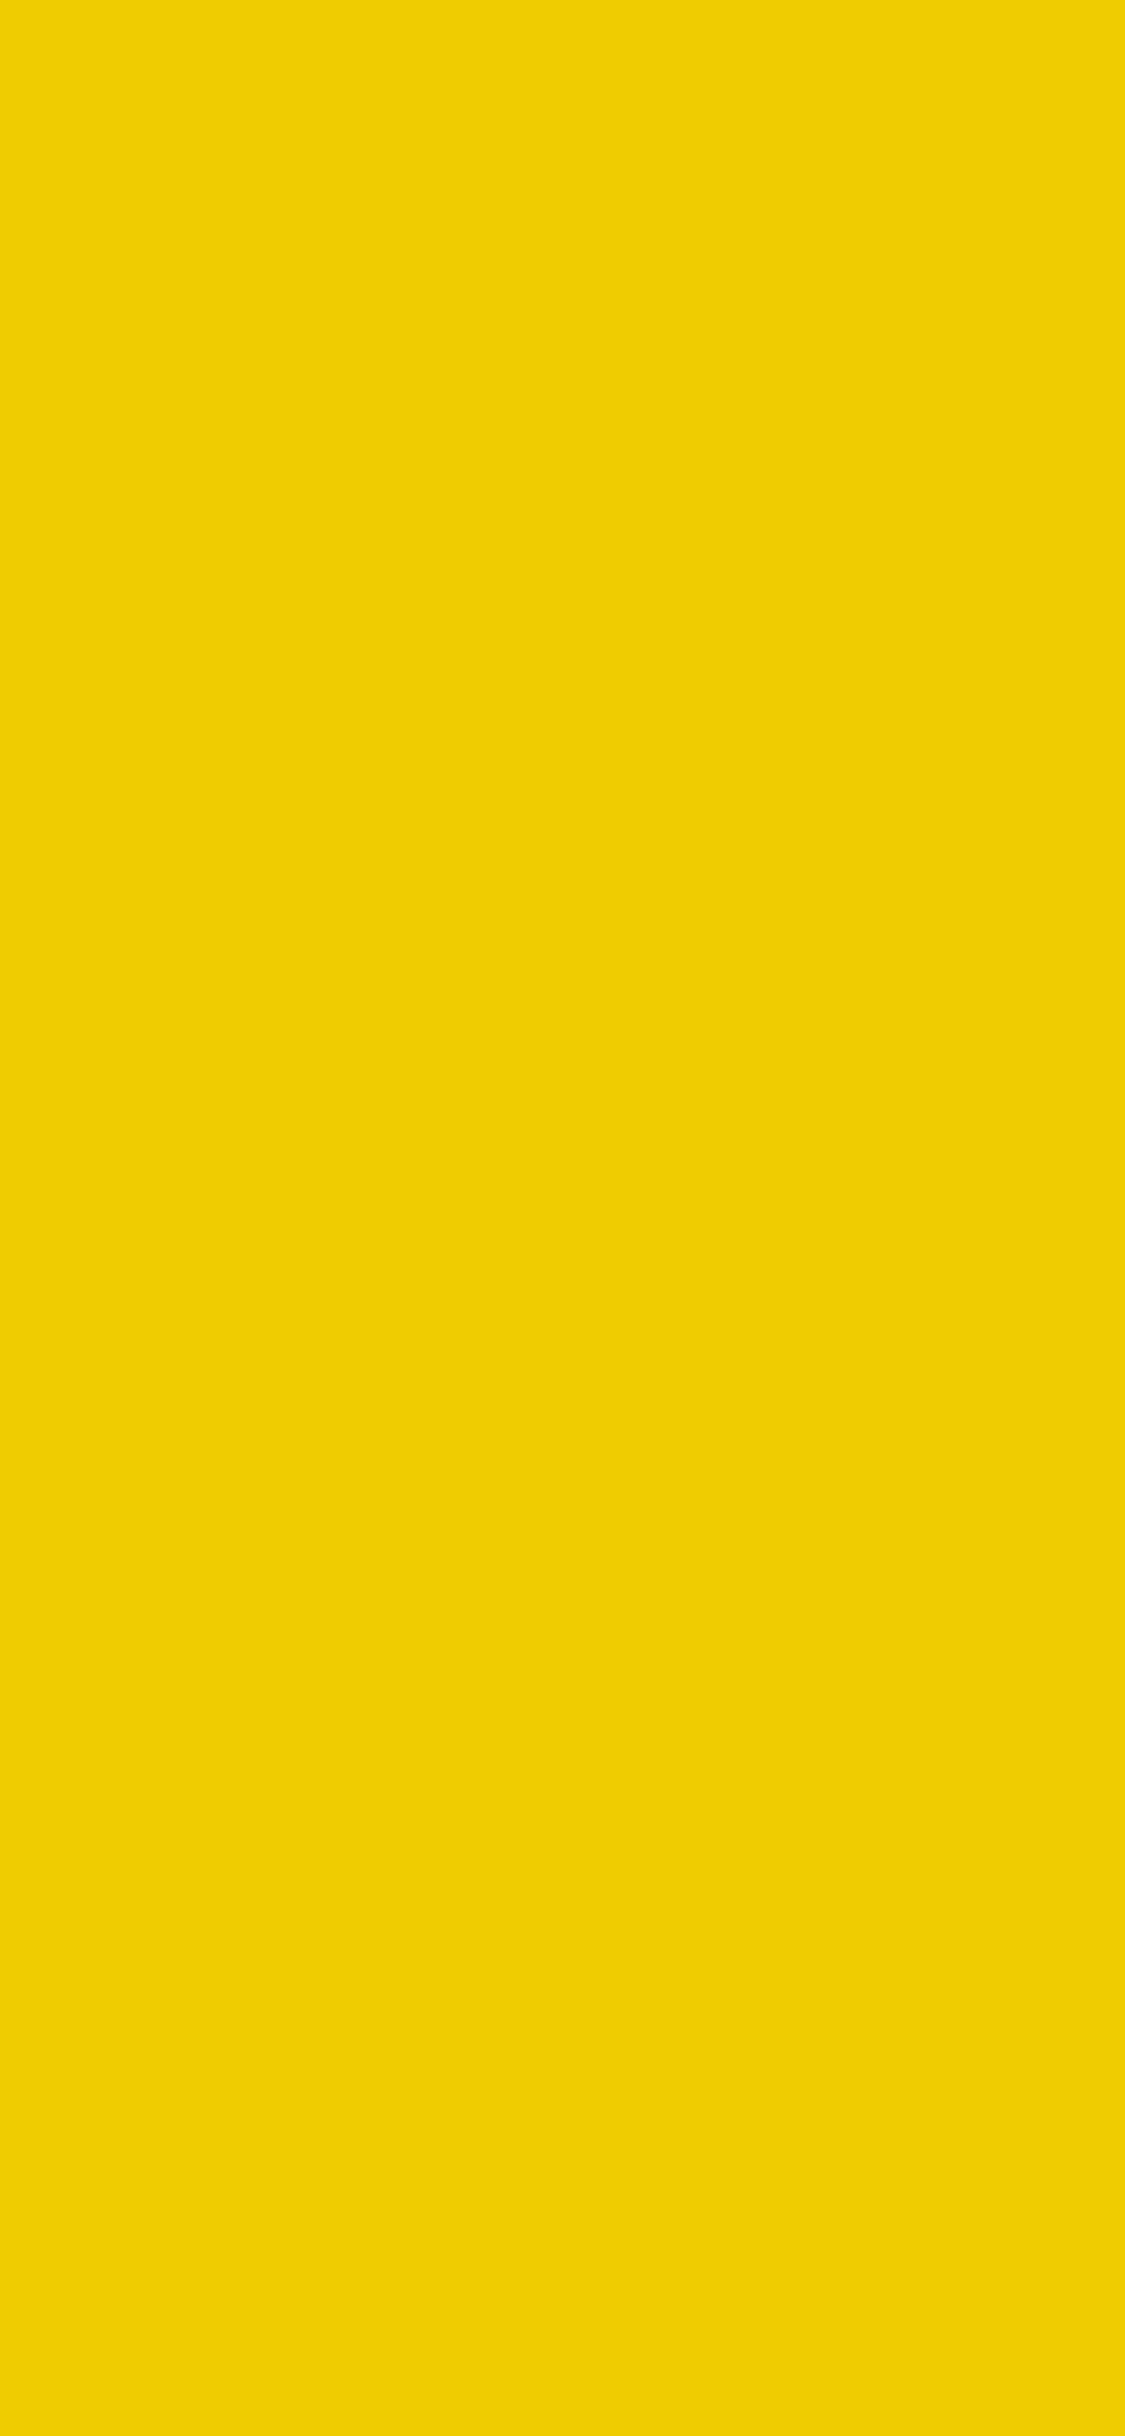 1125x2436 Yellow Munsell Solid Color Background